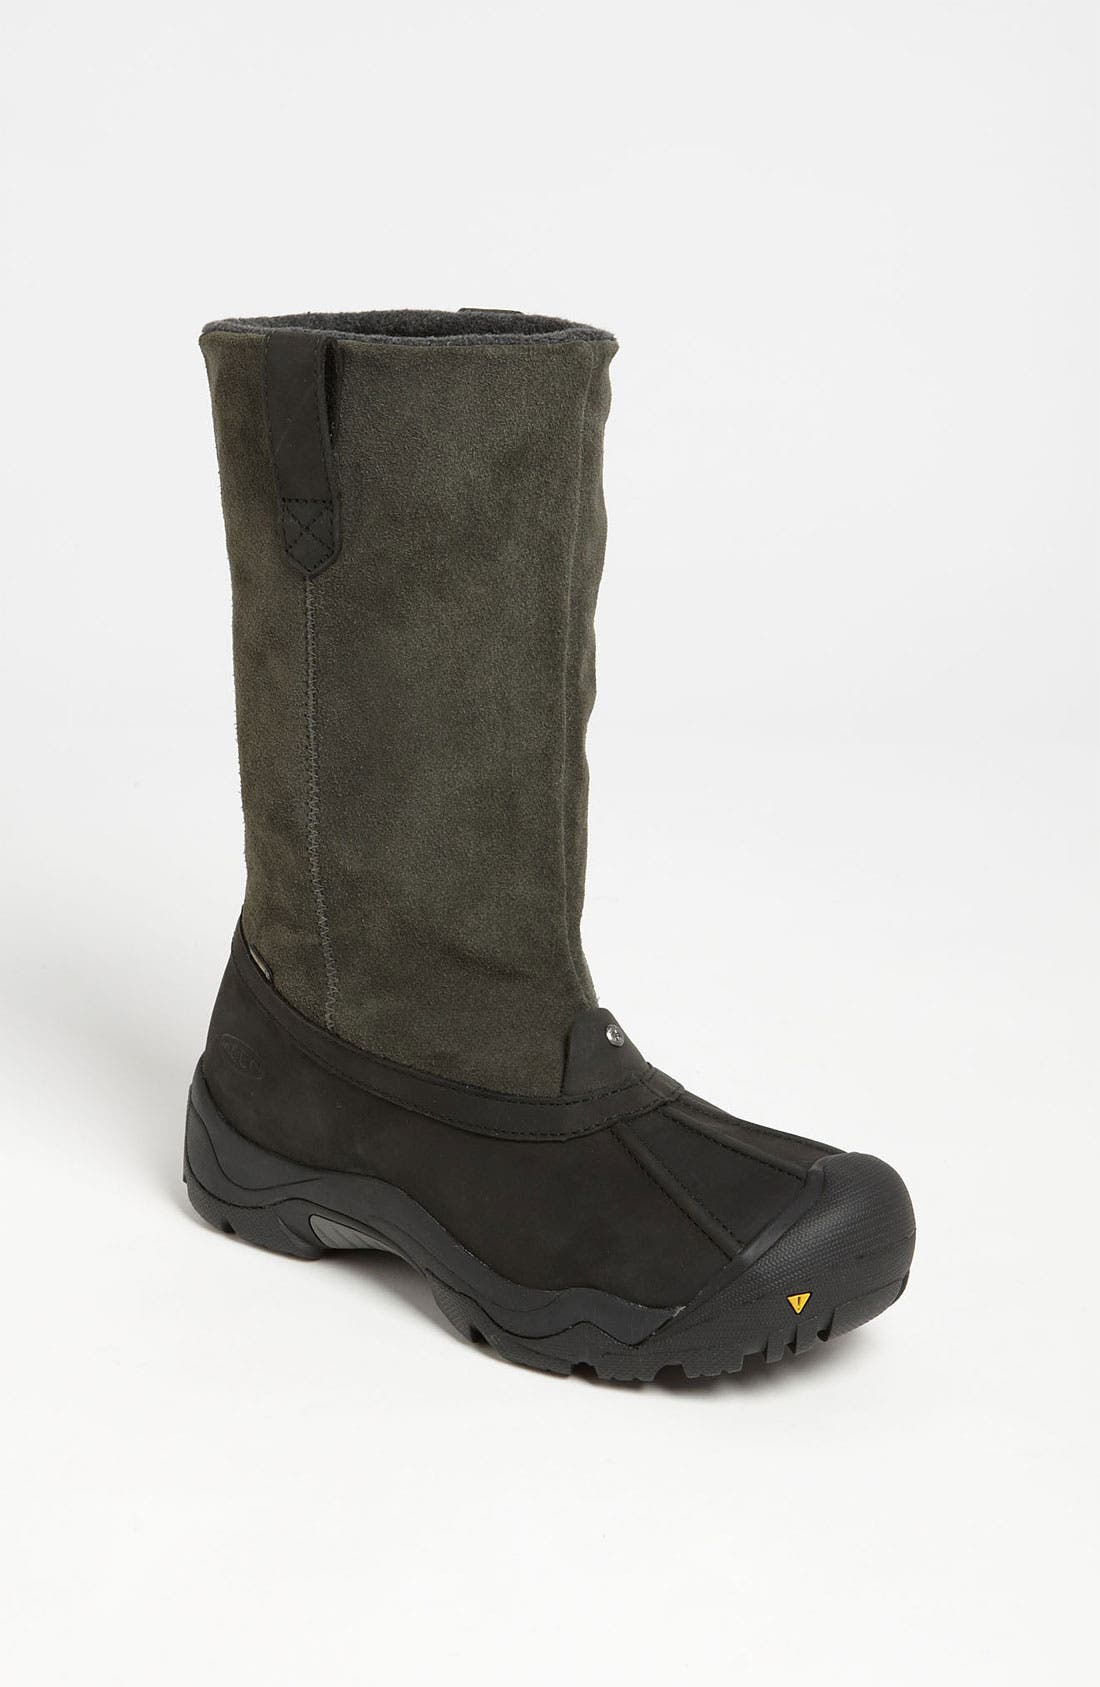 Alternate Image 1 Selected - Keen 'Incline' Snow Boot